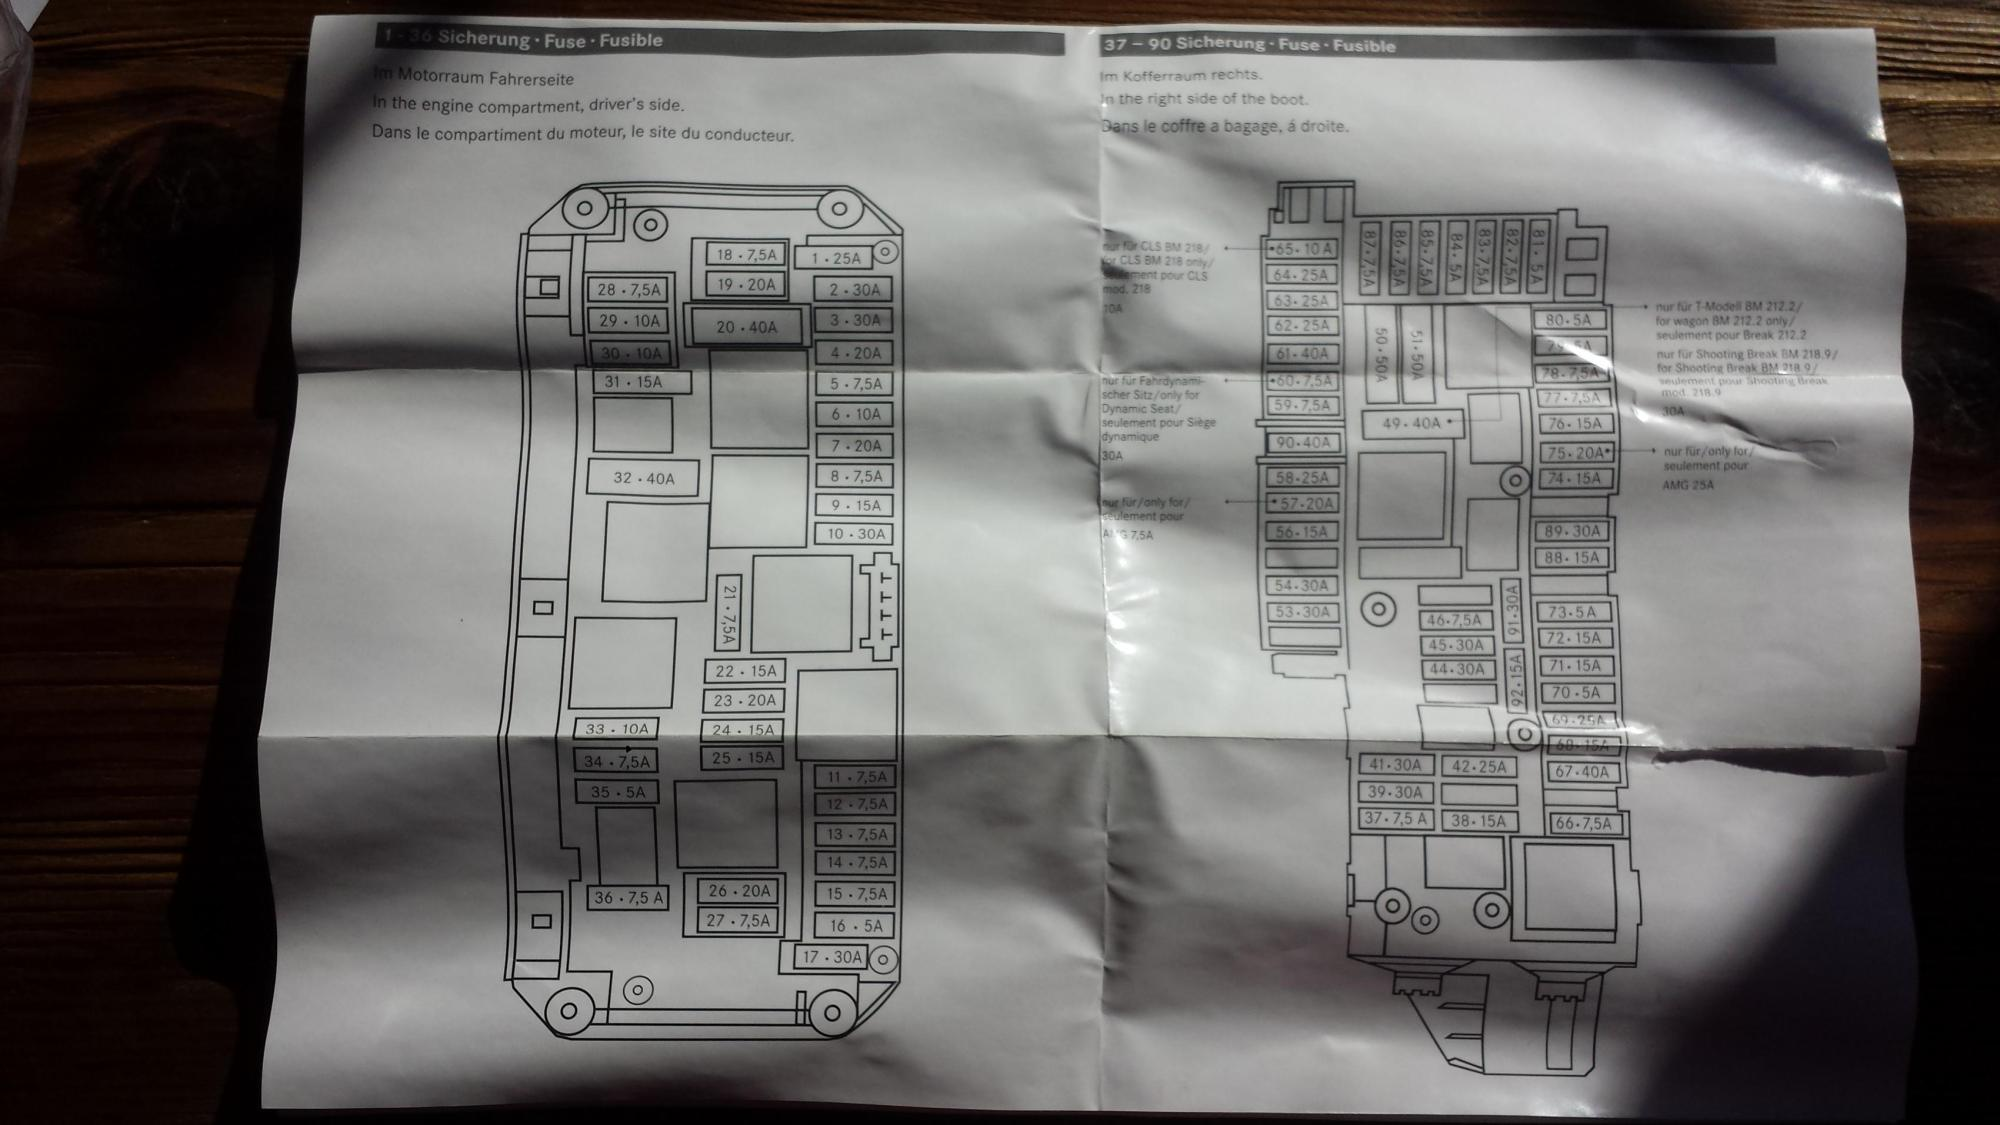 hight resolution of toyota tacoma fuse box diagram 2015 wiring library2009 toyota tacoma fuse box location trusted wiring diagram